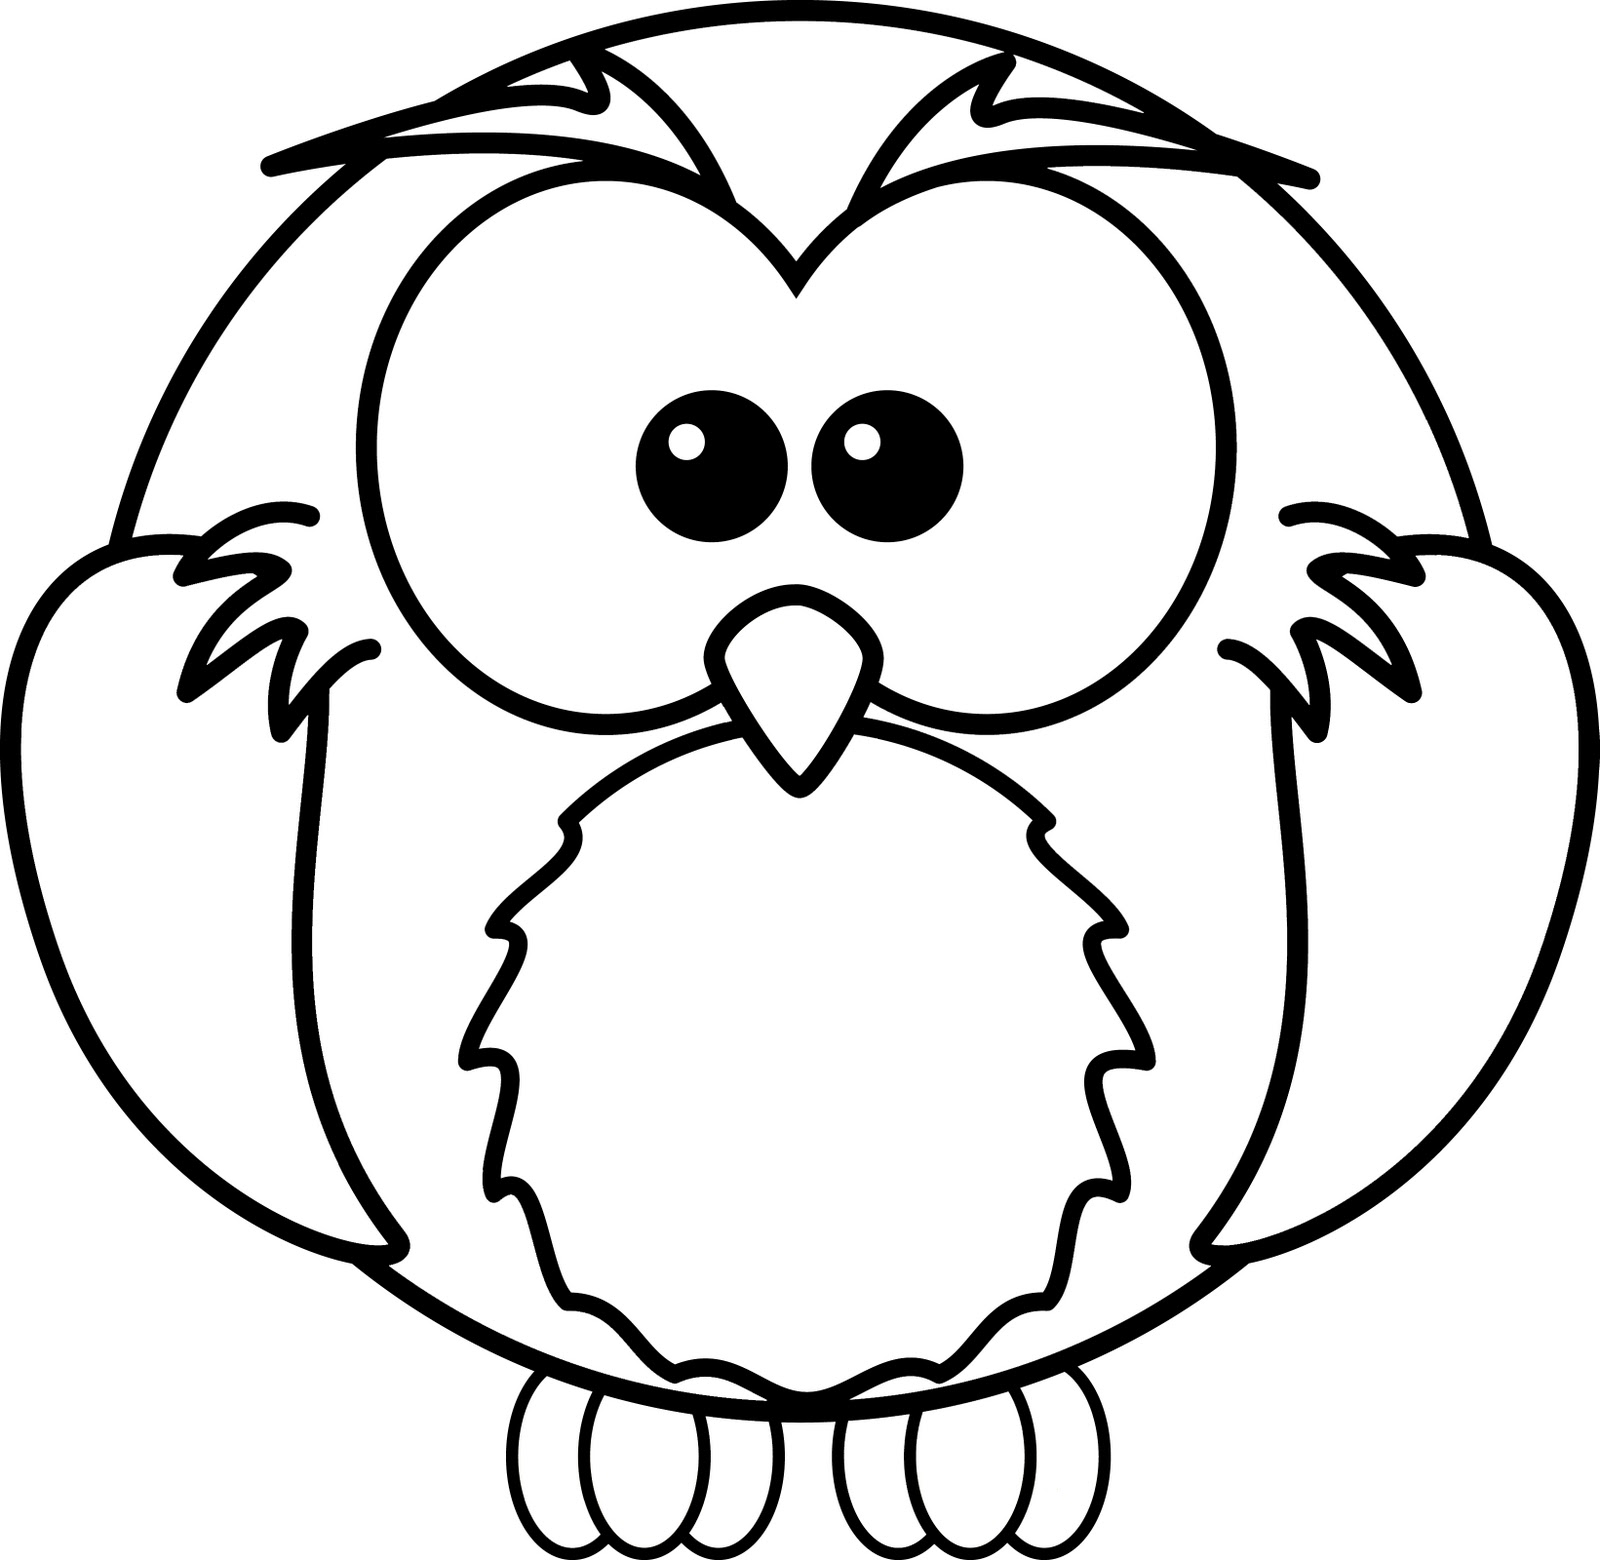 baby owl coloring pages free printable owl coloring pages for kids cool2bkids baby pages coloring owl